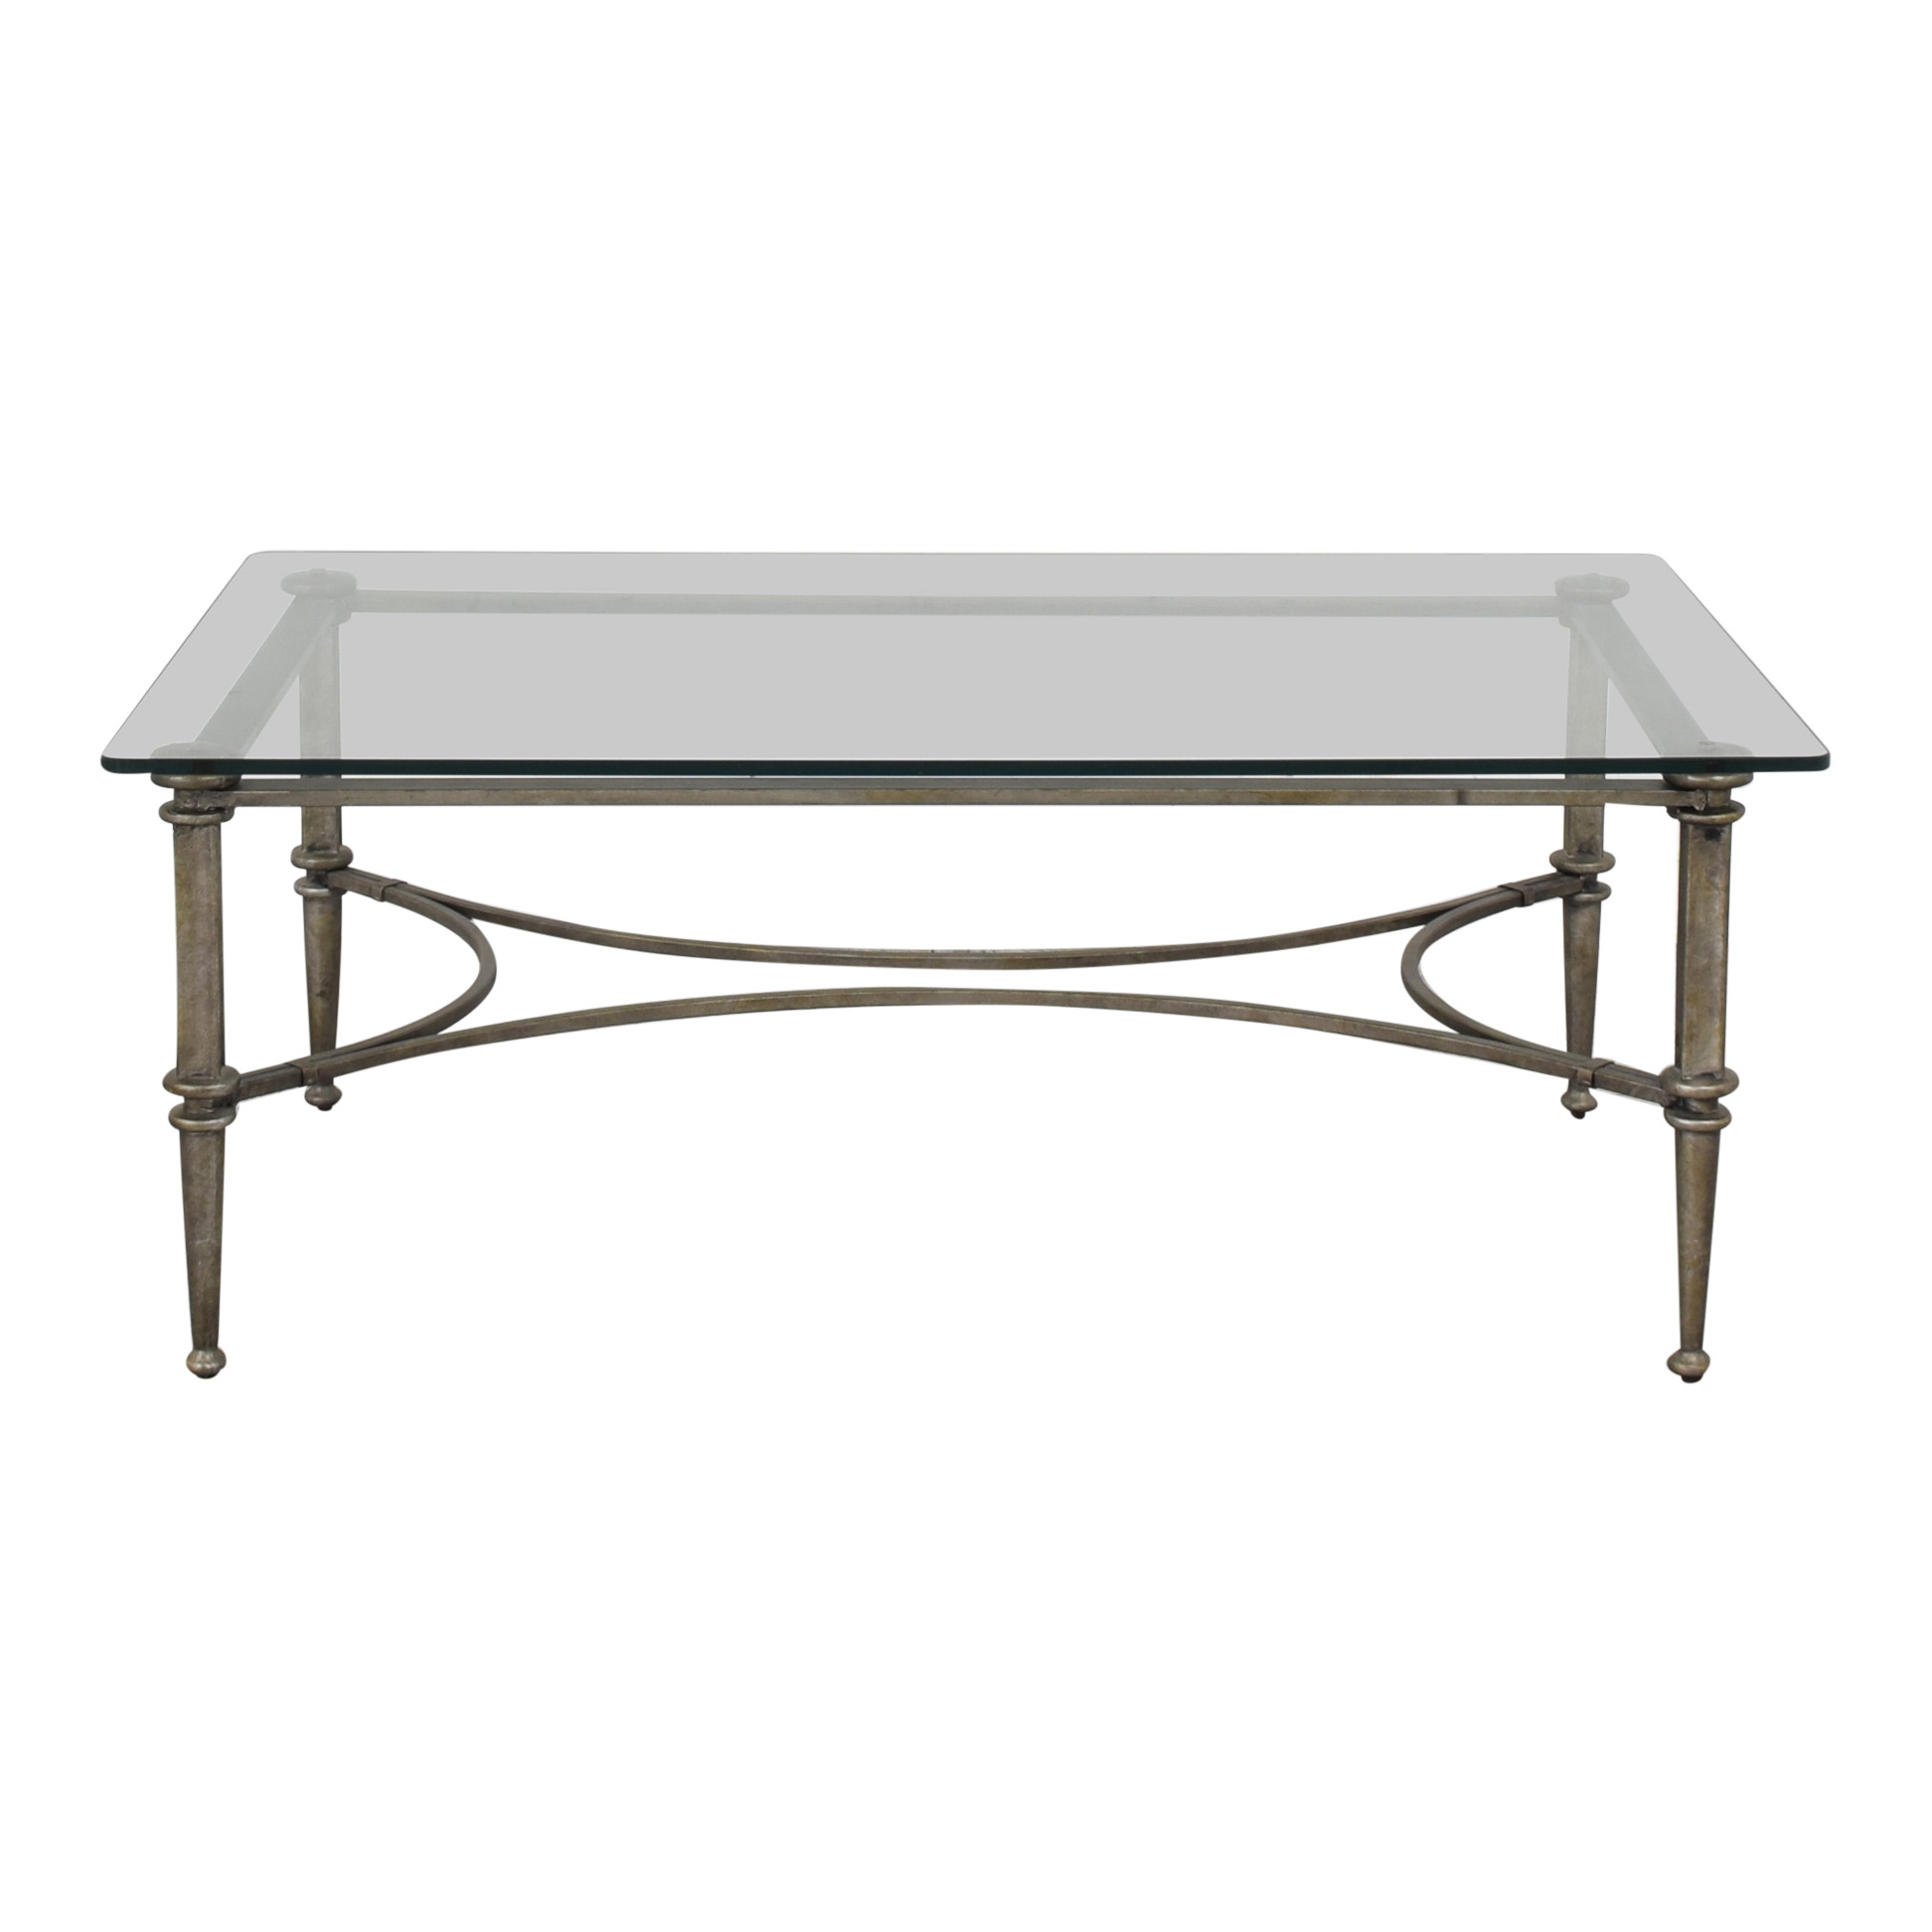 Bloomingdale's Glass Coffee Table / Coffee Tables